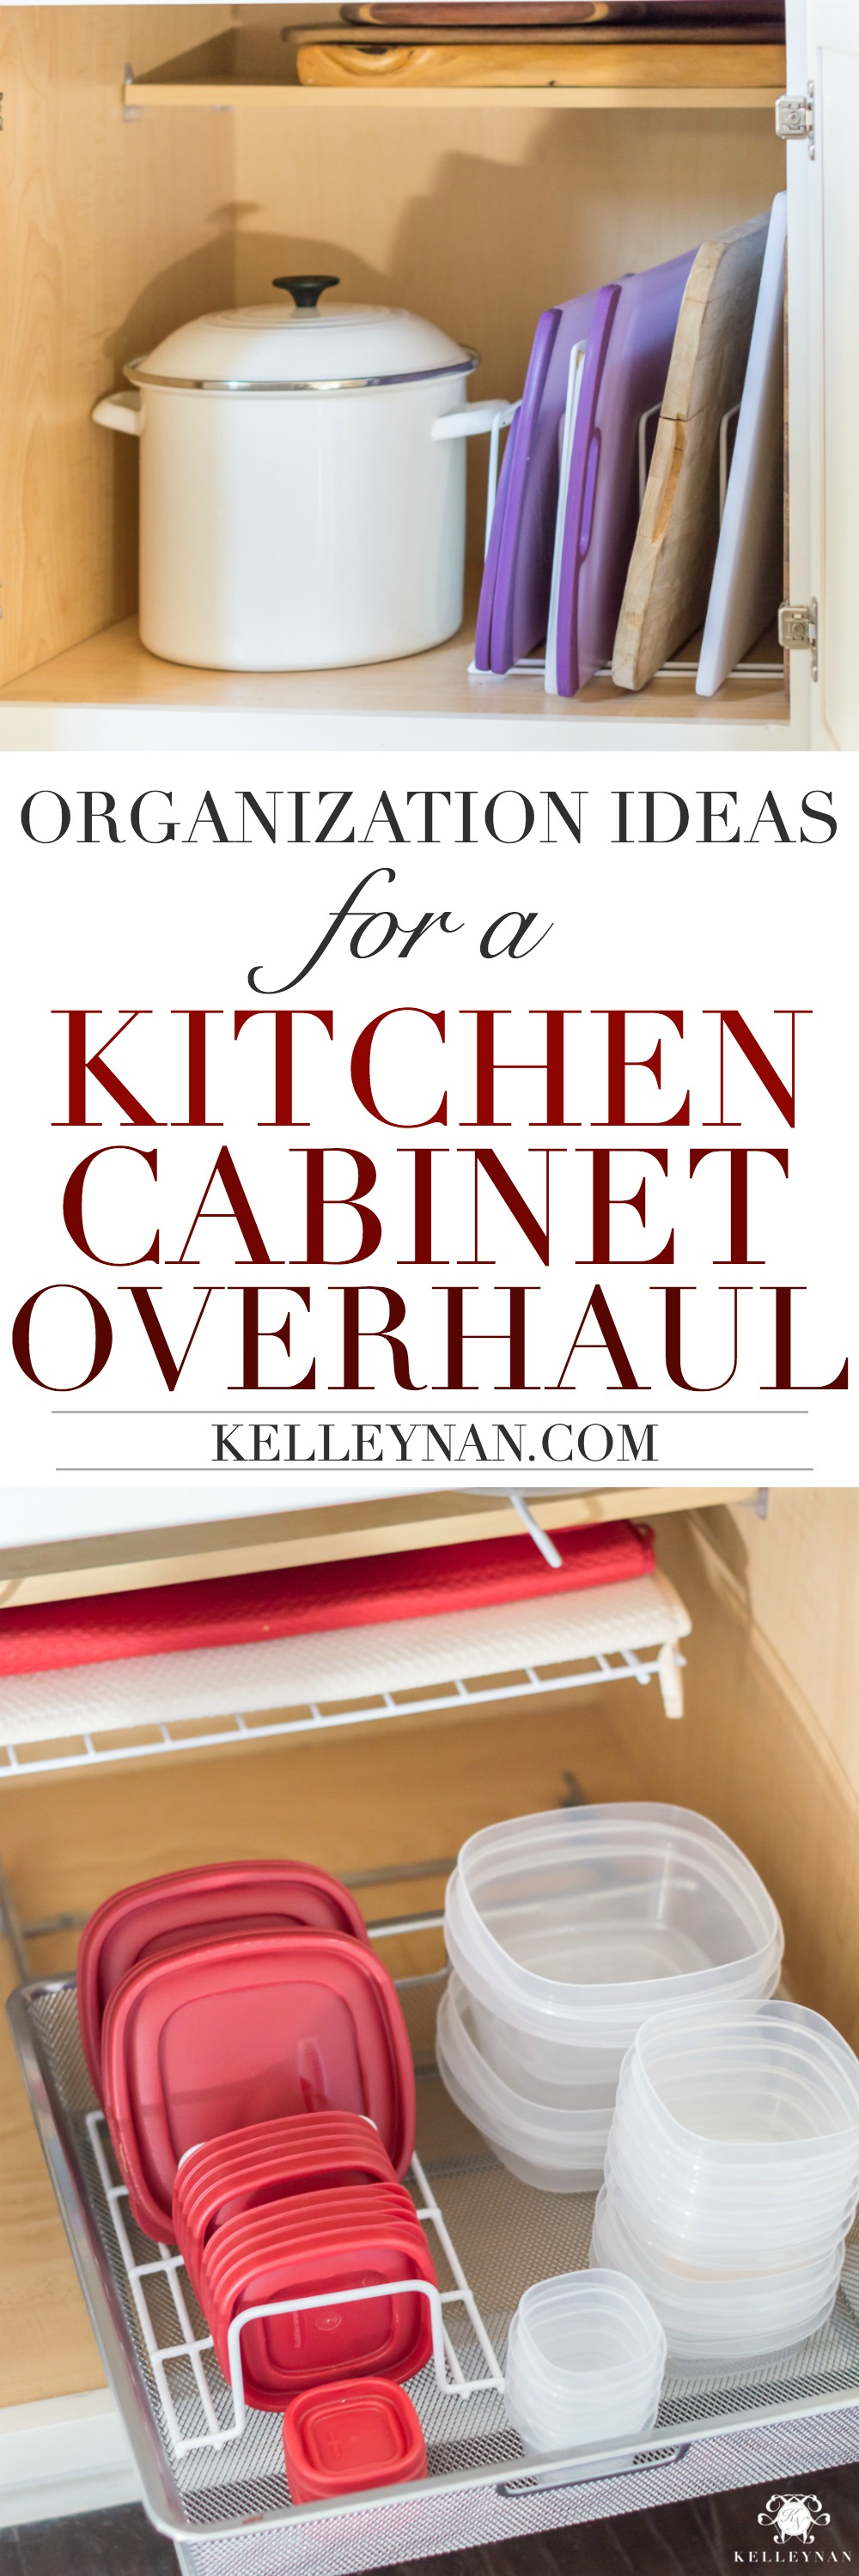 How to Organize and declutter your kitchen cabinets